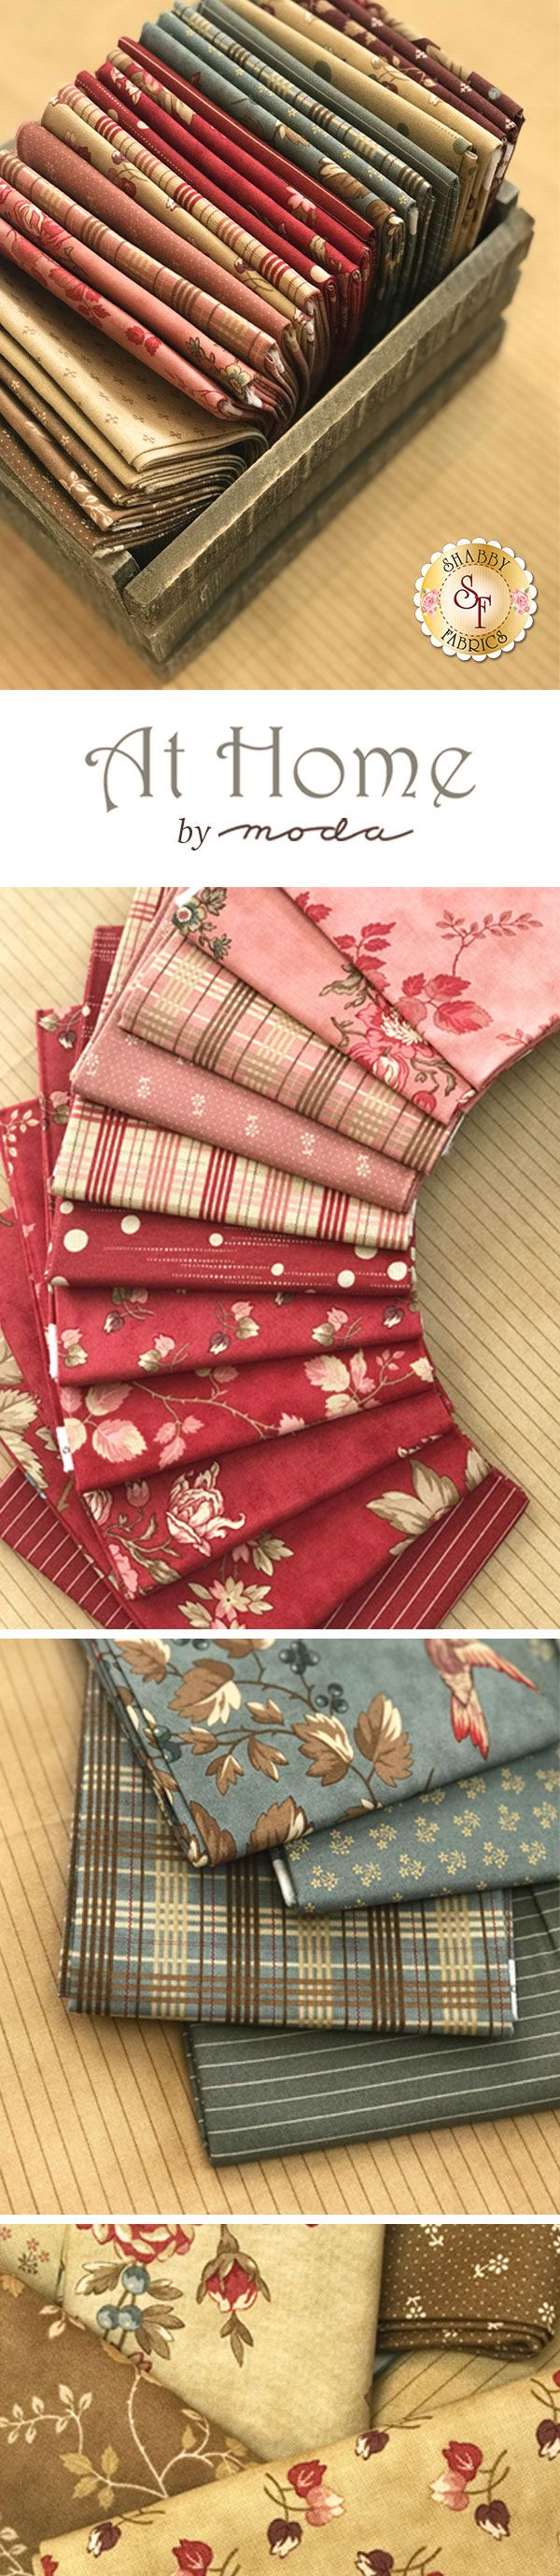 At Home by Blackbird Designs is a lovely collection filled with beautiful prints that will blend with any decor from Moda Fabrics available at Shabby Fabrics.